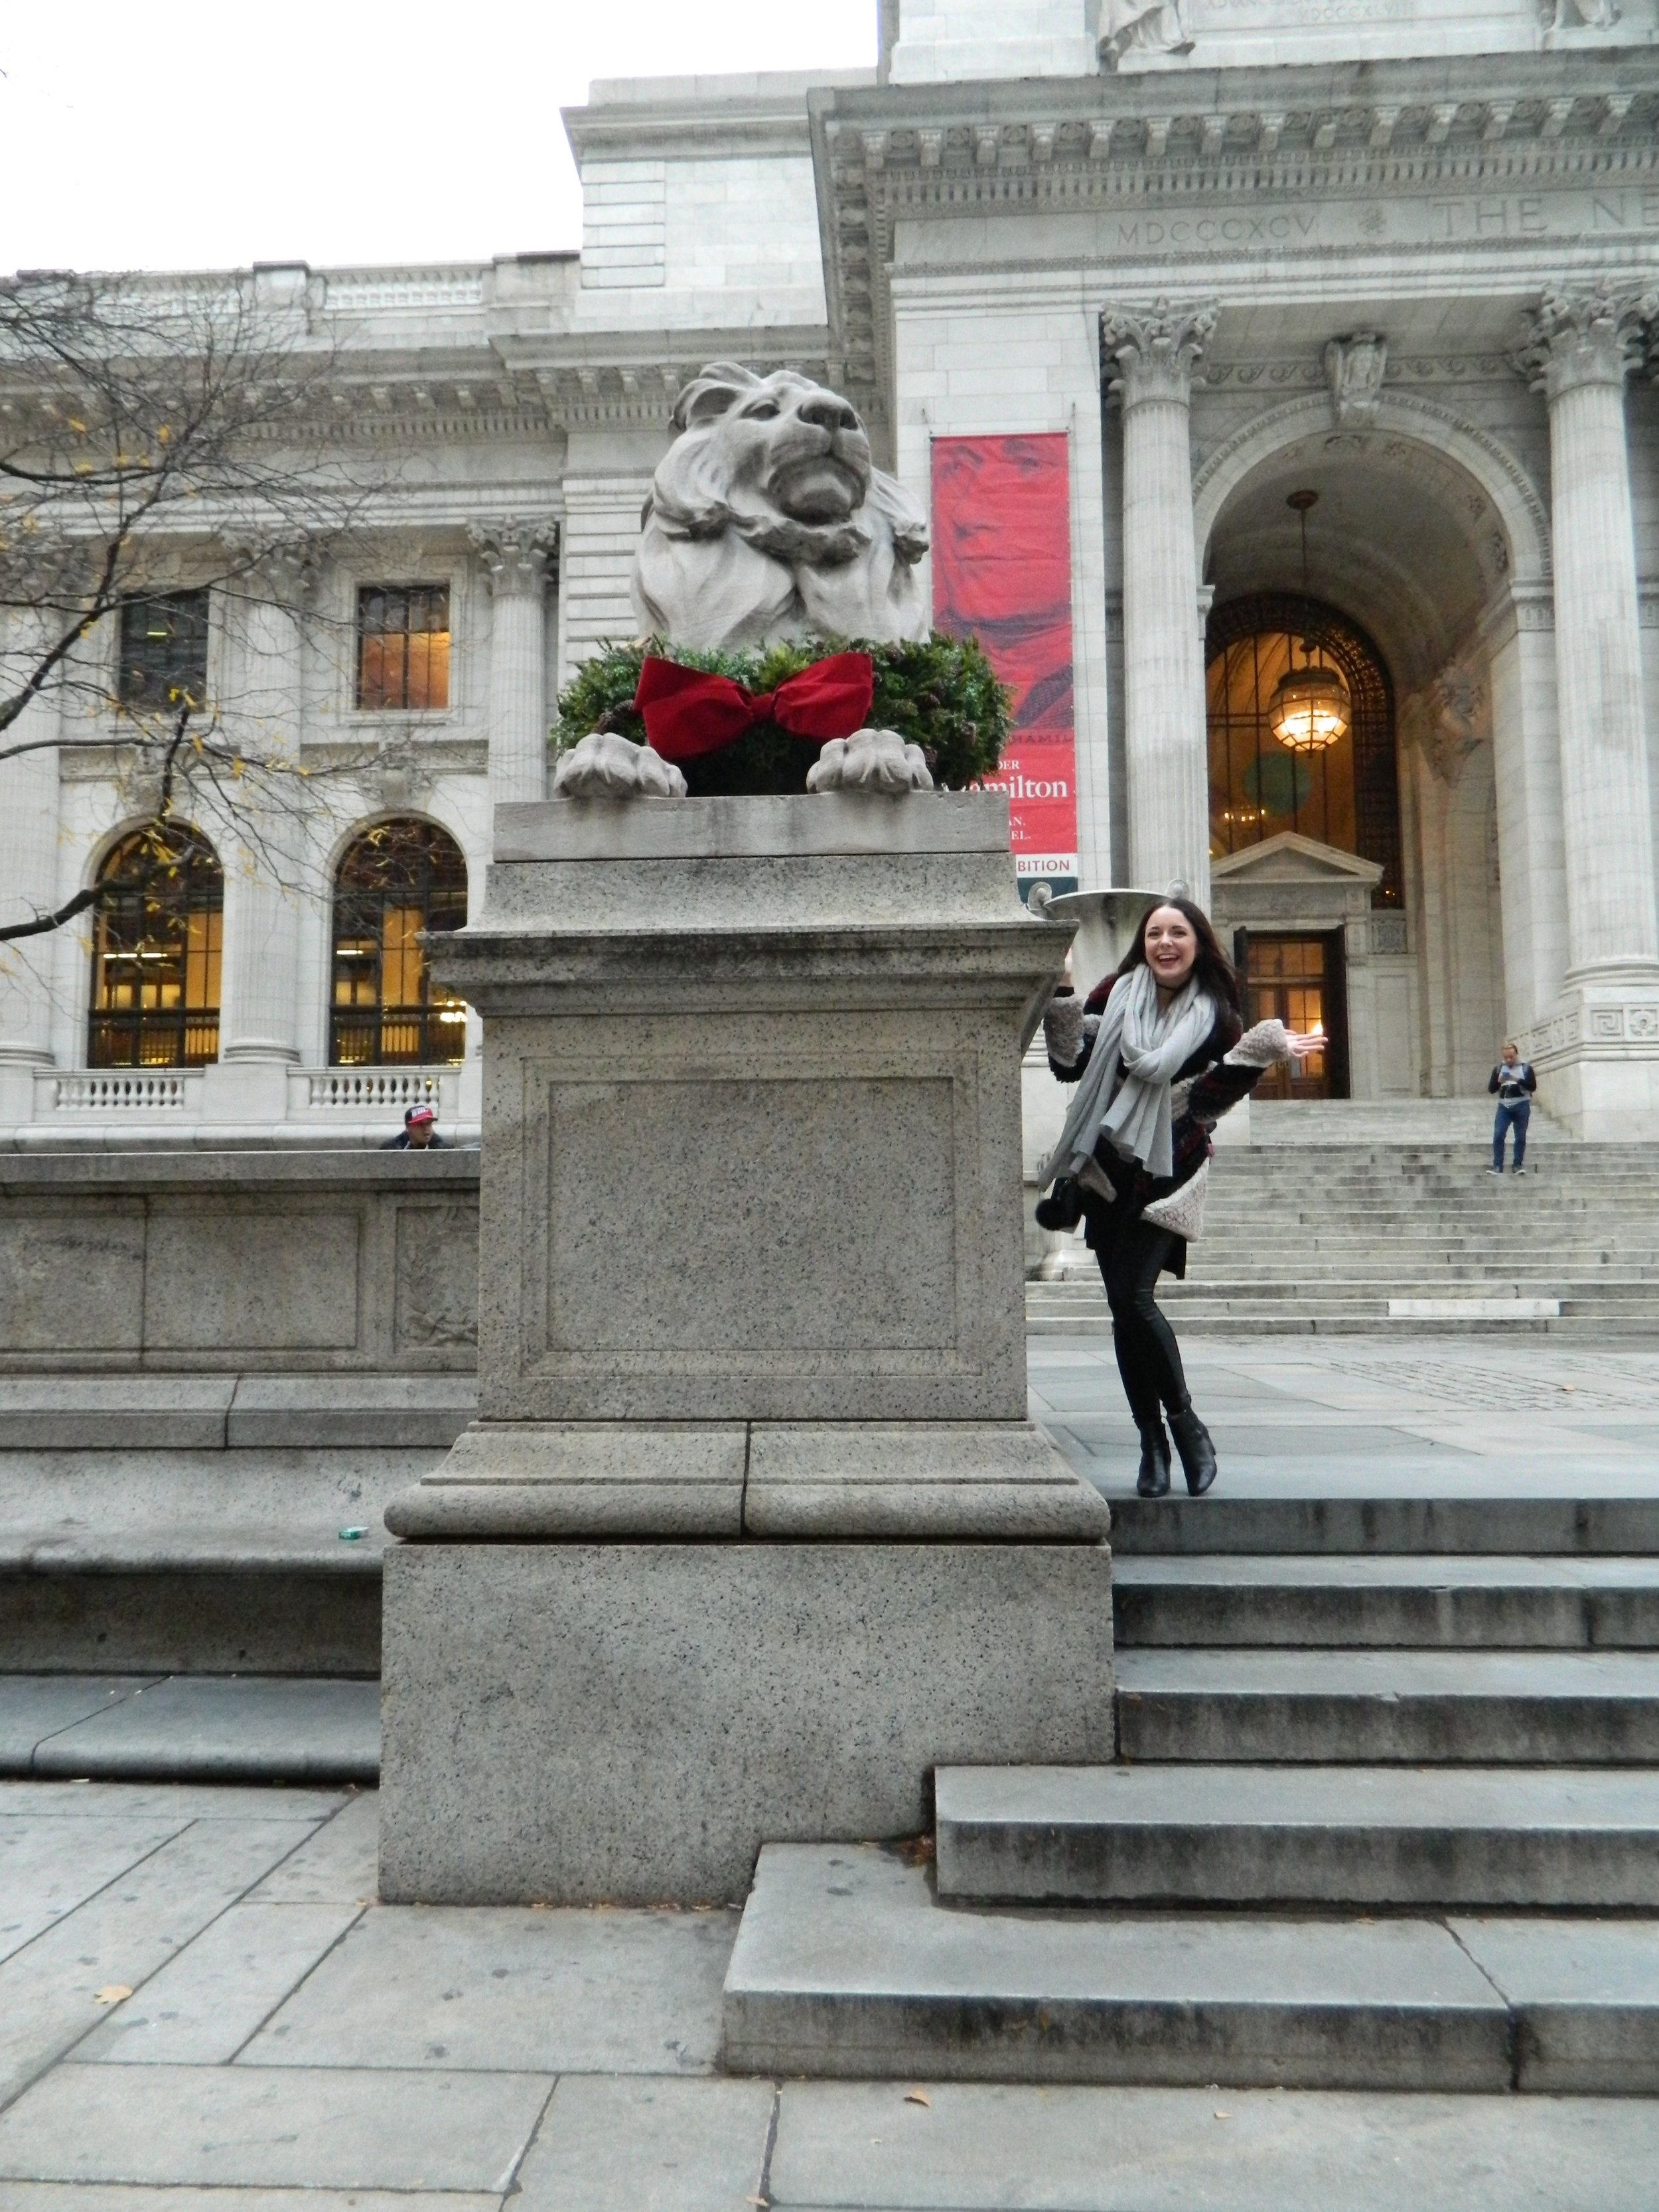 Courtney posing in between the lions at the New York Public Library